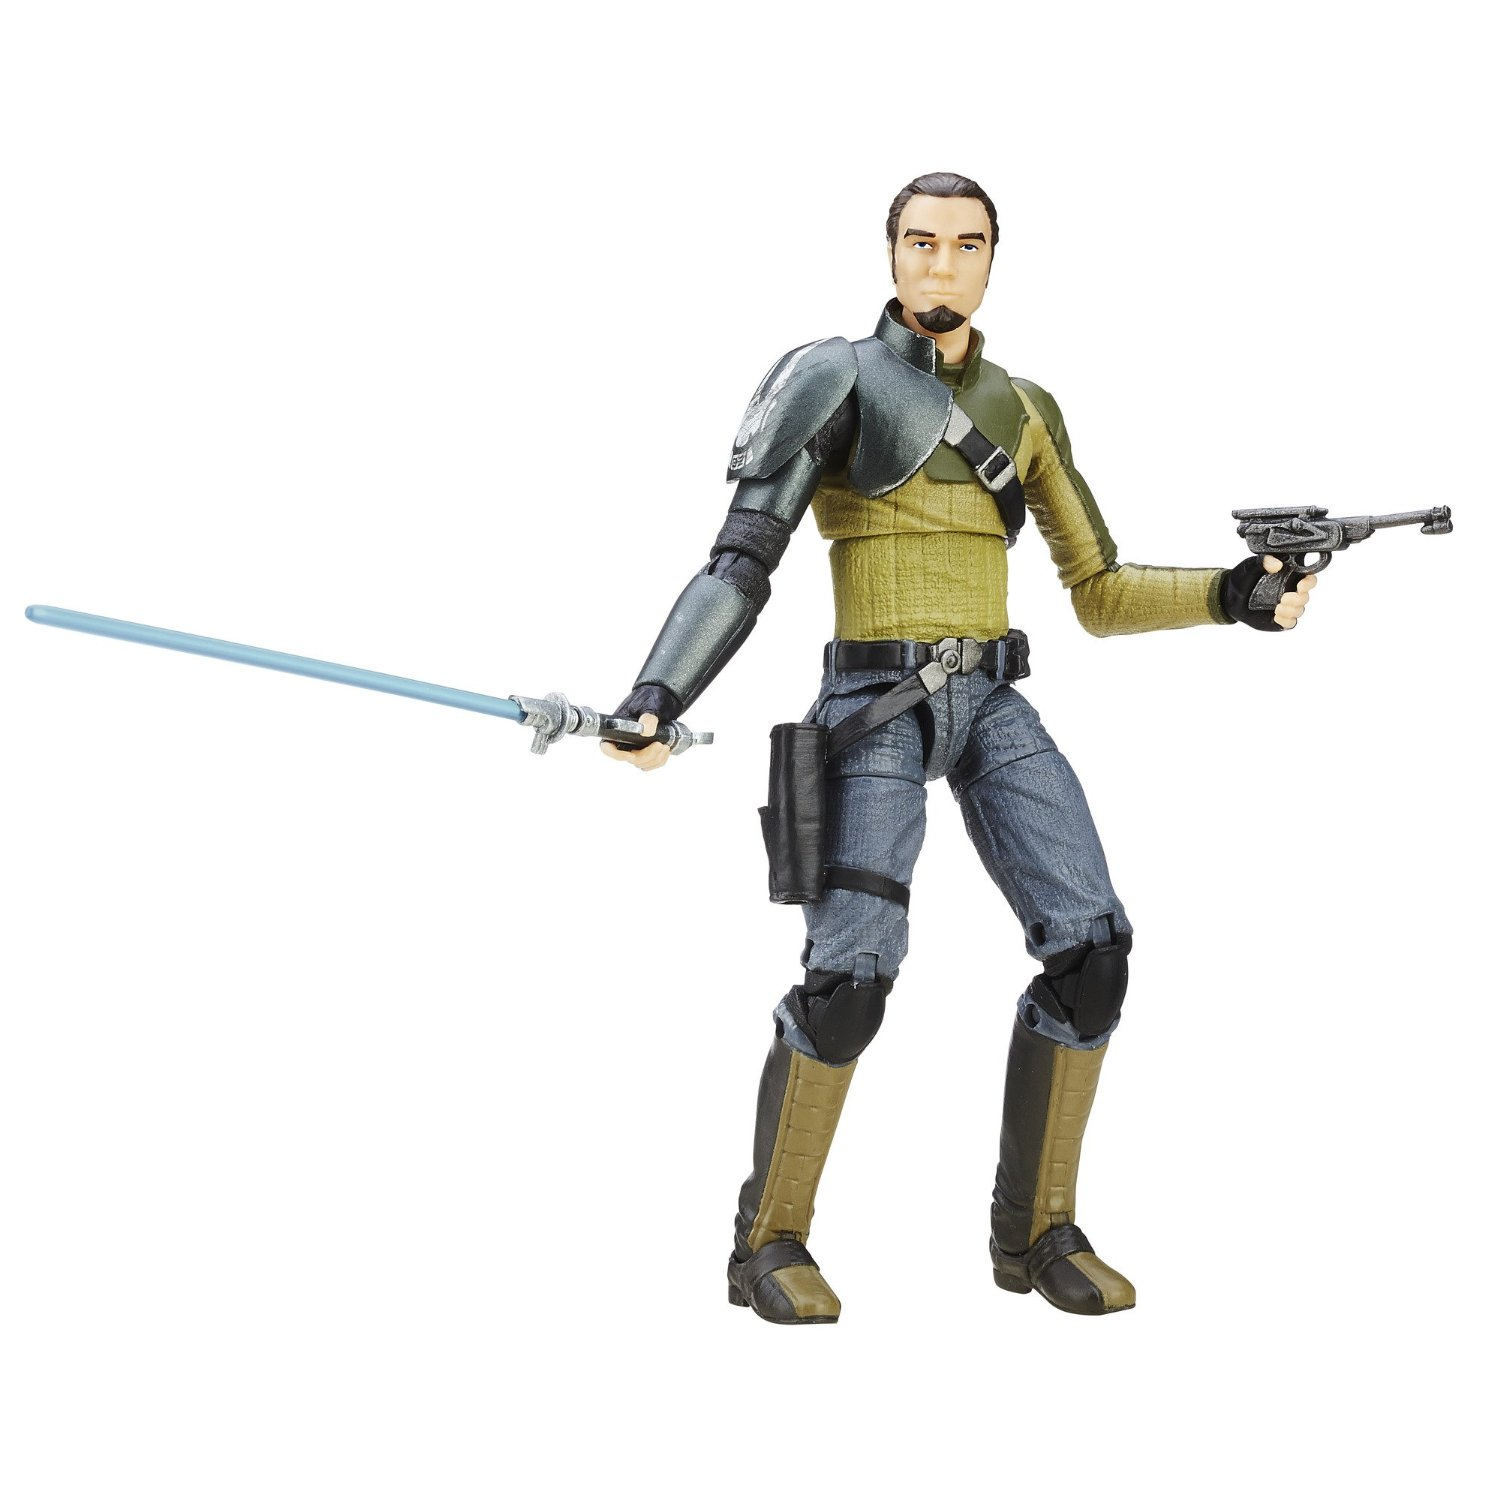 Hasbro Star Wars TBS 6″ Kanan & Luke $21.99 On Amazon